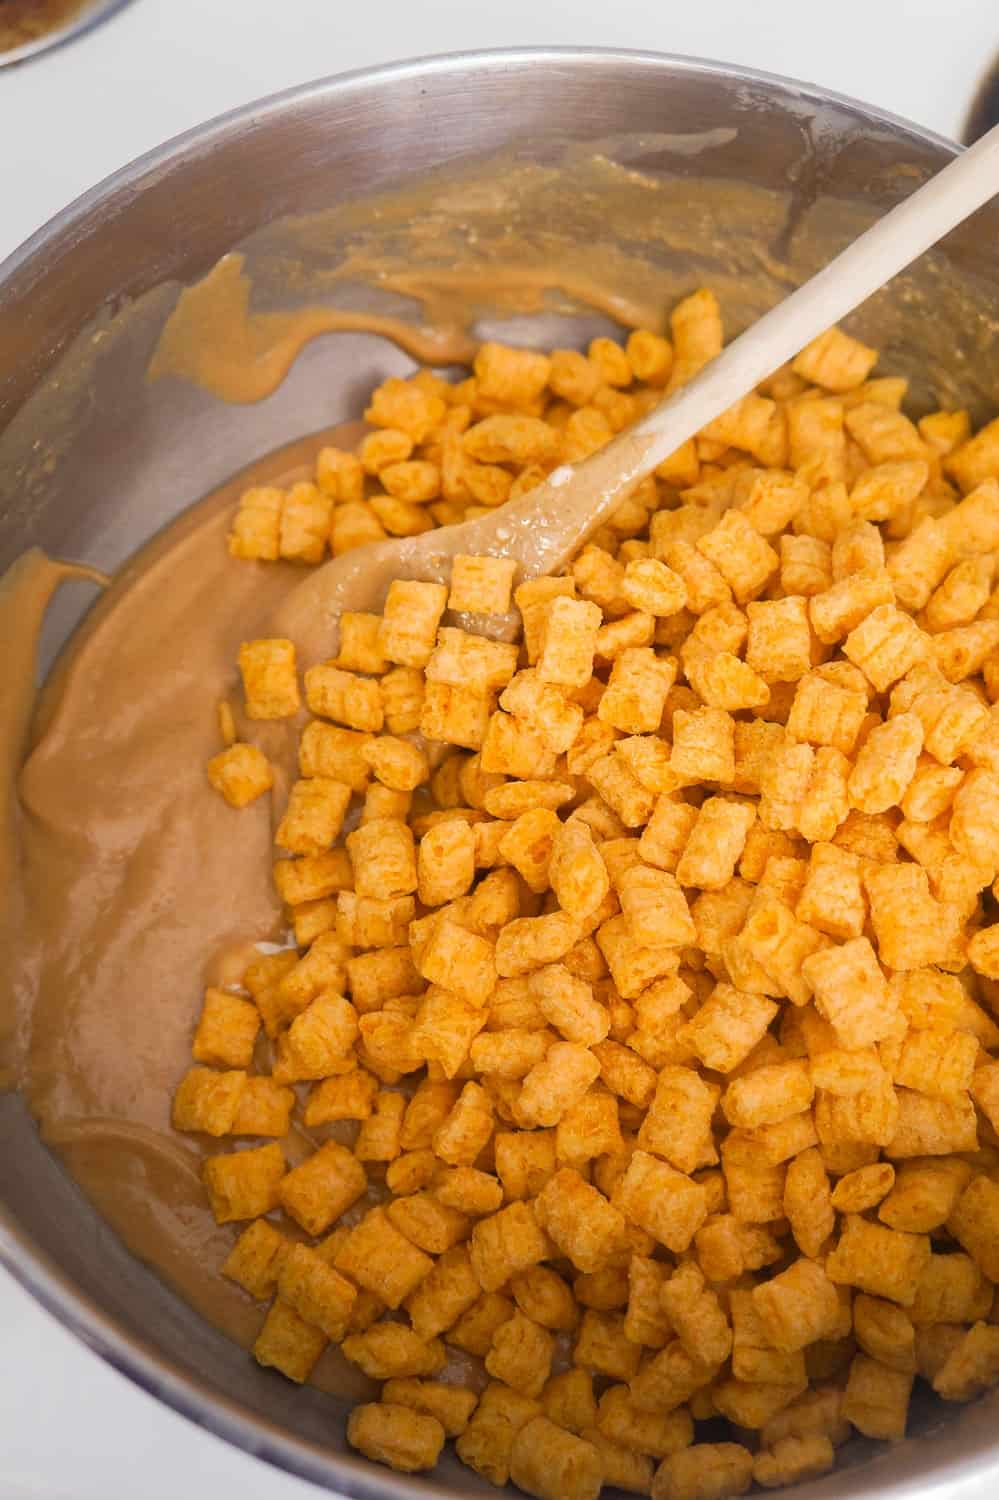 captain crunch cereal in melted peanut butter marshmallow mixture